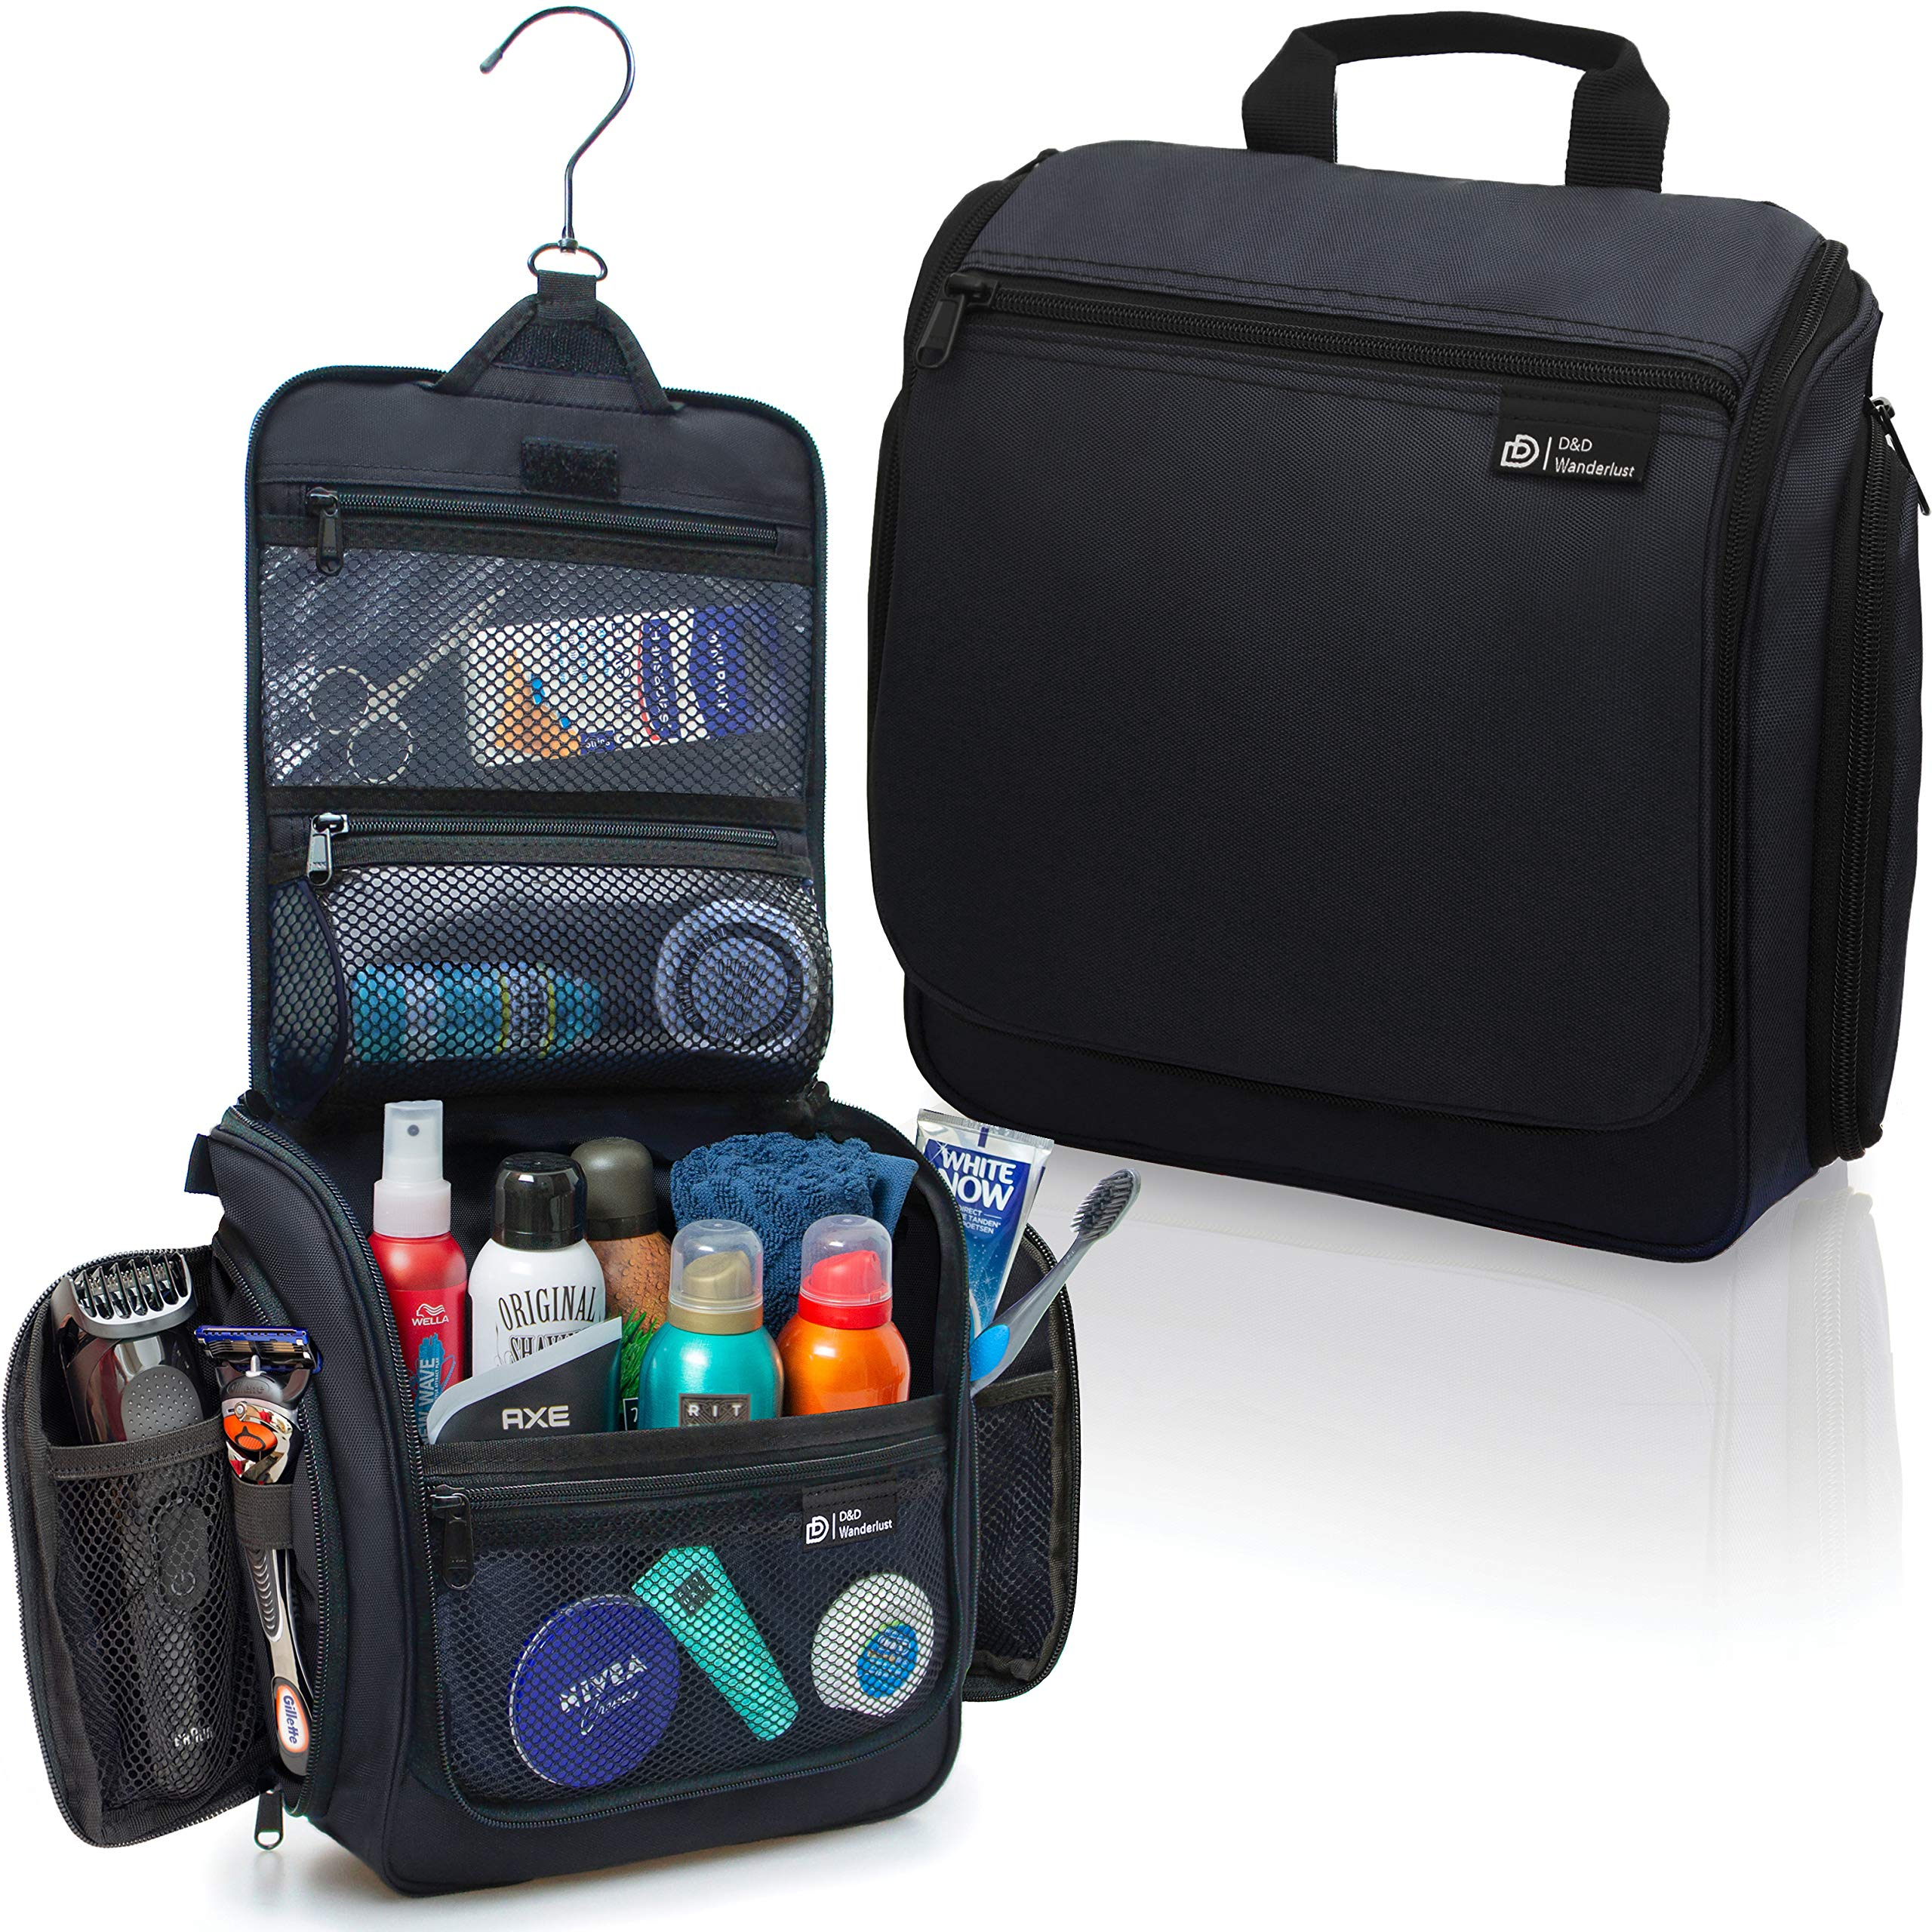 Hanging Travel Toiletry Bag for Men and Women - Large Cosmetics, Makeup and Toiletries Organizer Kit with 19 Compartments, YKK Zippers, XXL Metal Swivel Hook, Water-Resistant Nylon by DD D&D Wanderlust